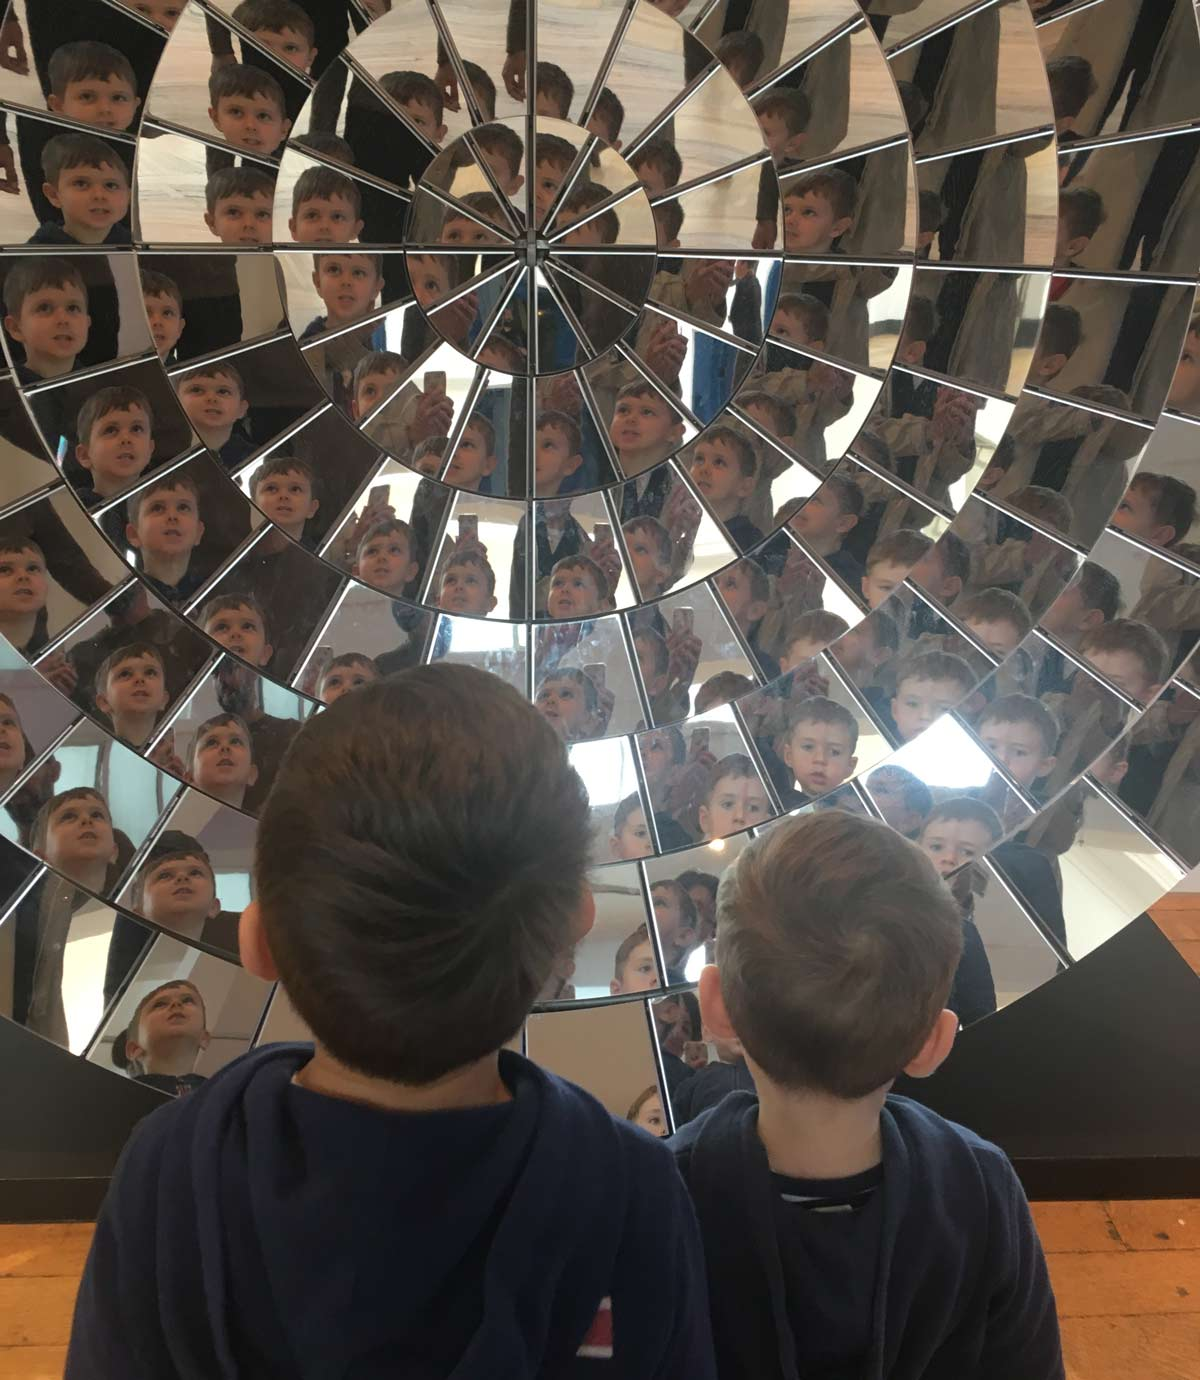 the fun mirrors at the science museum